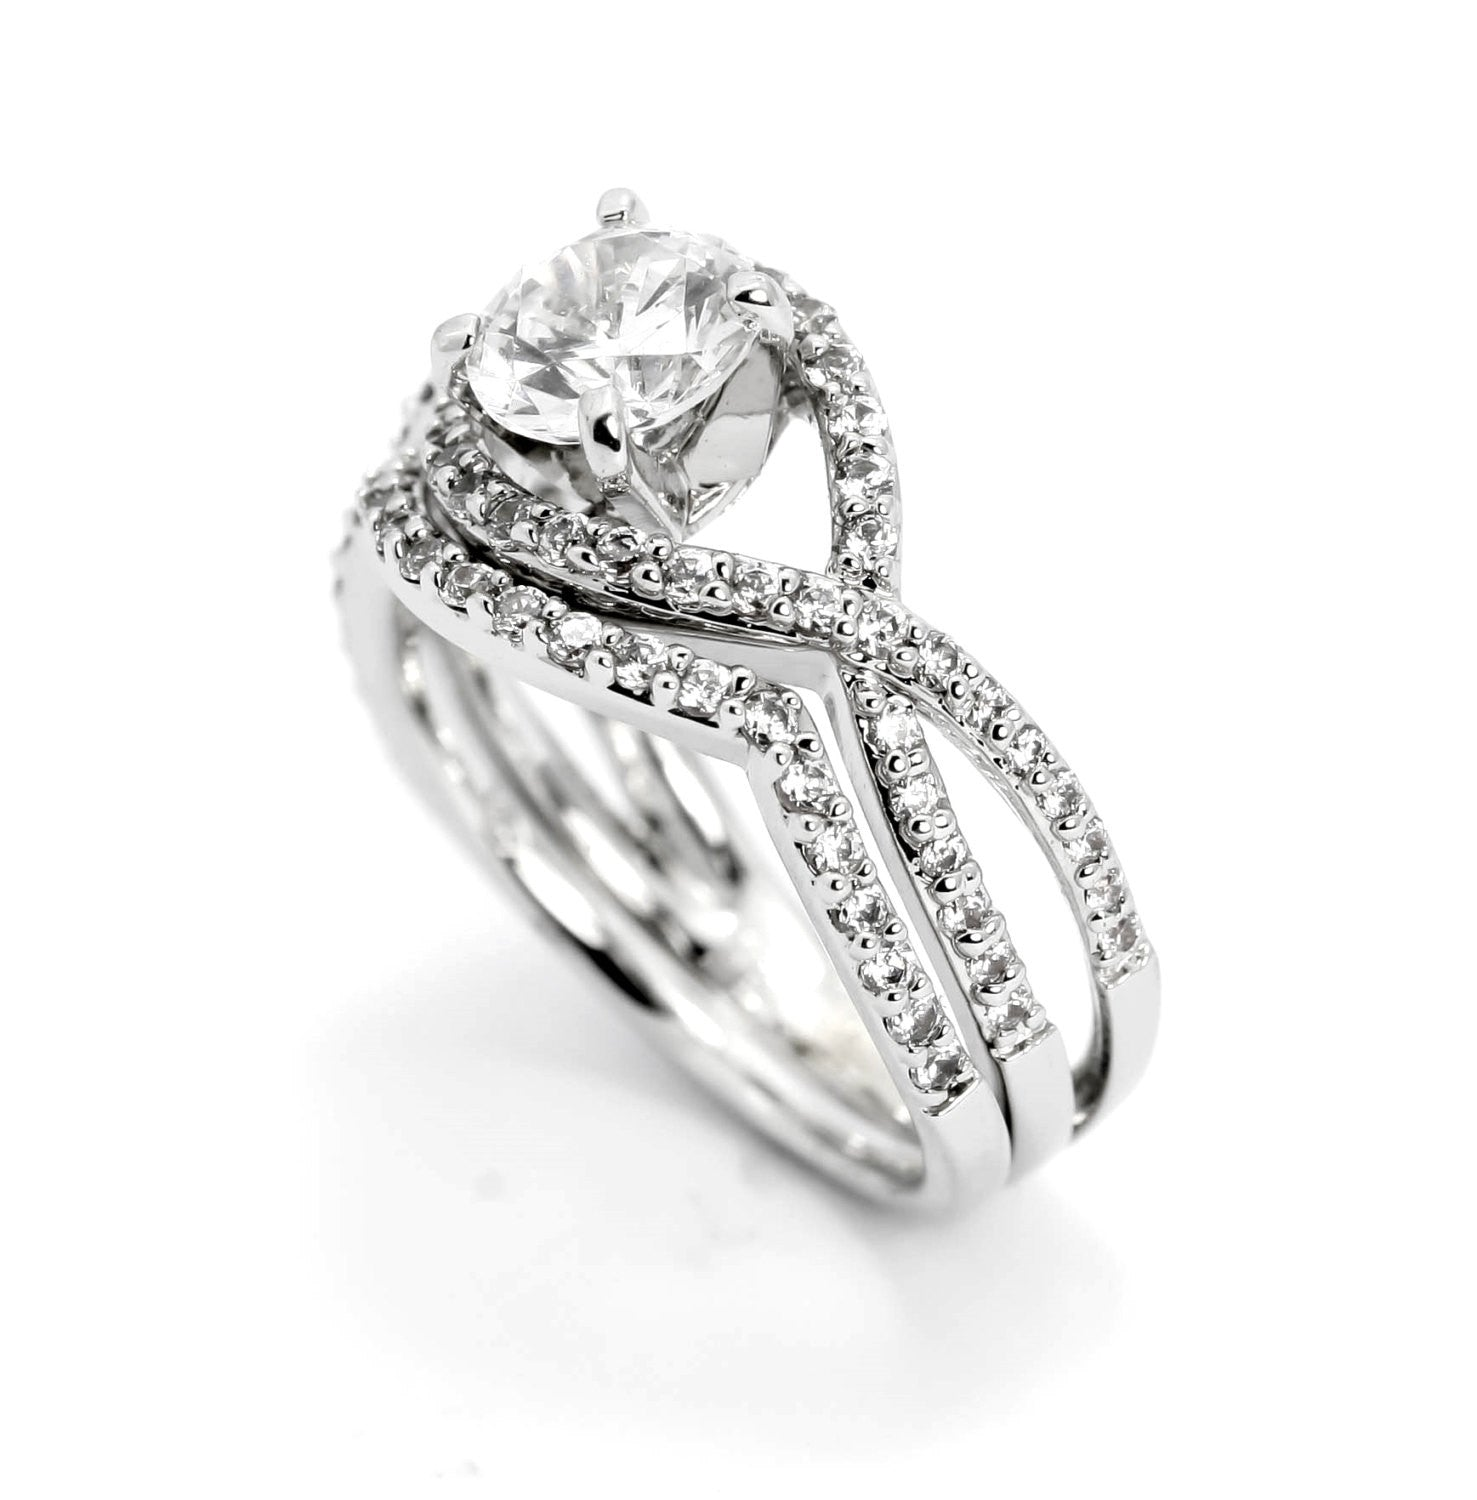 Engagement Ring & Wedding Band, Unique Infinity Style With .75 Carat Diamonds, Split Shank 1 Carat Forever Brilliant Moissanite Center Stone - FB85040